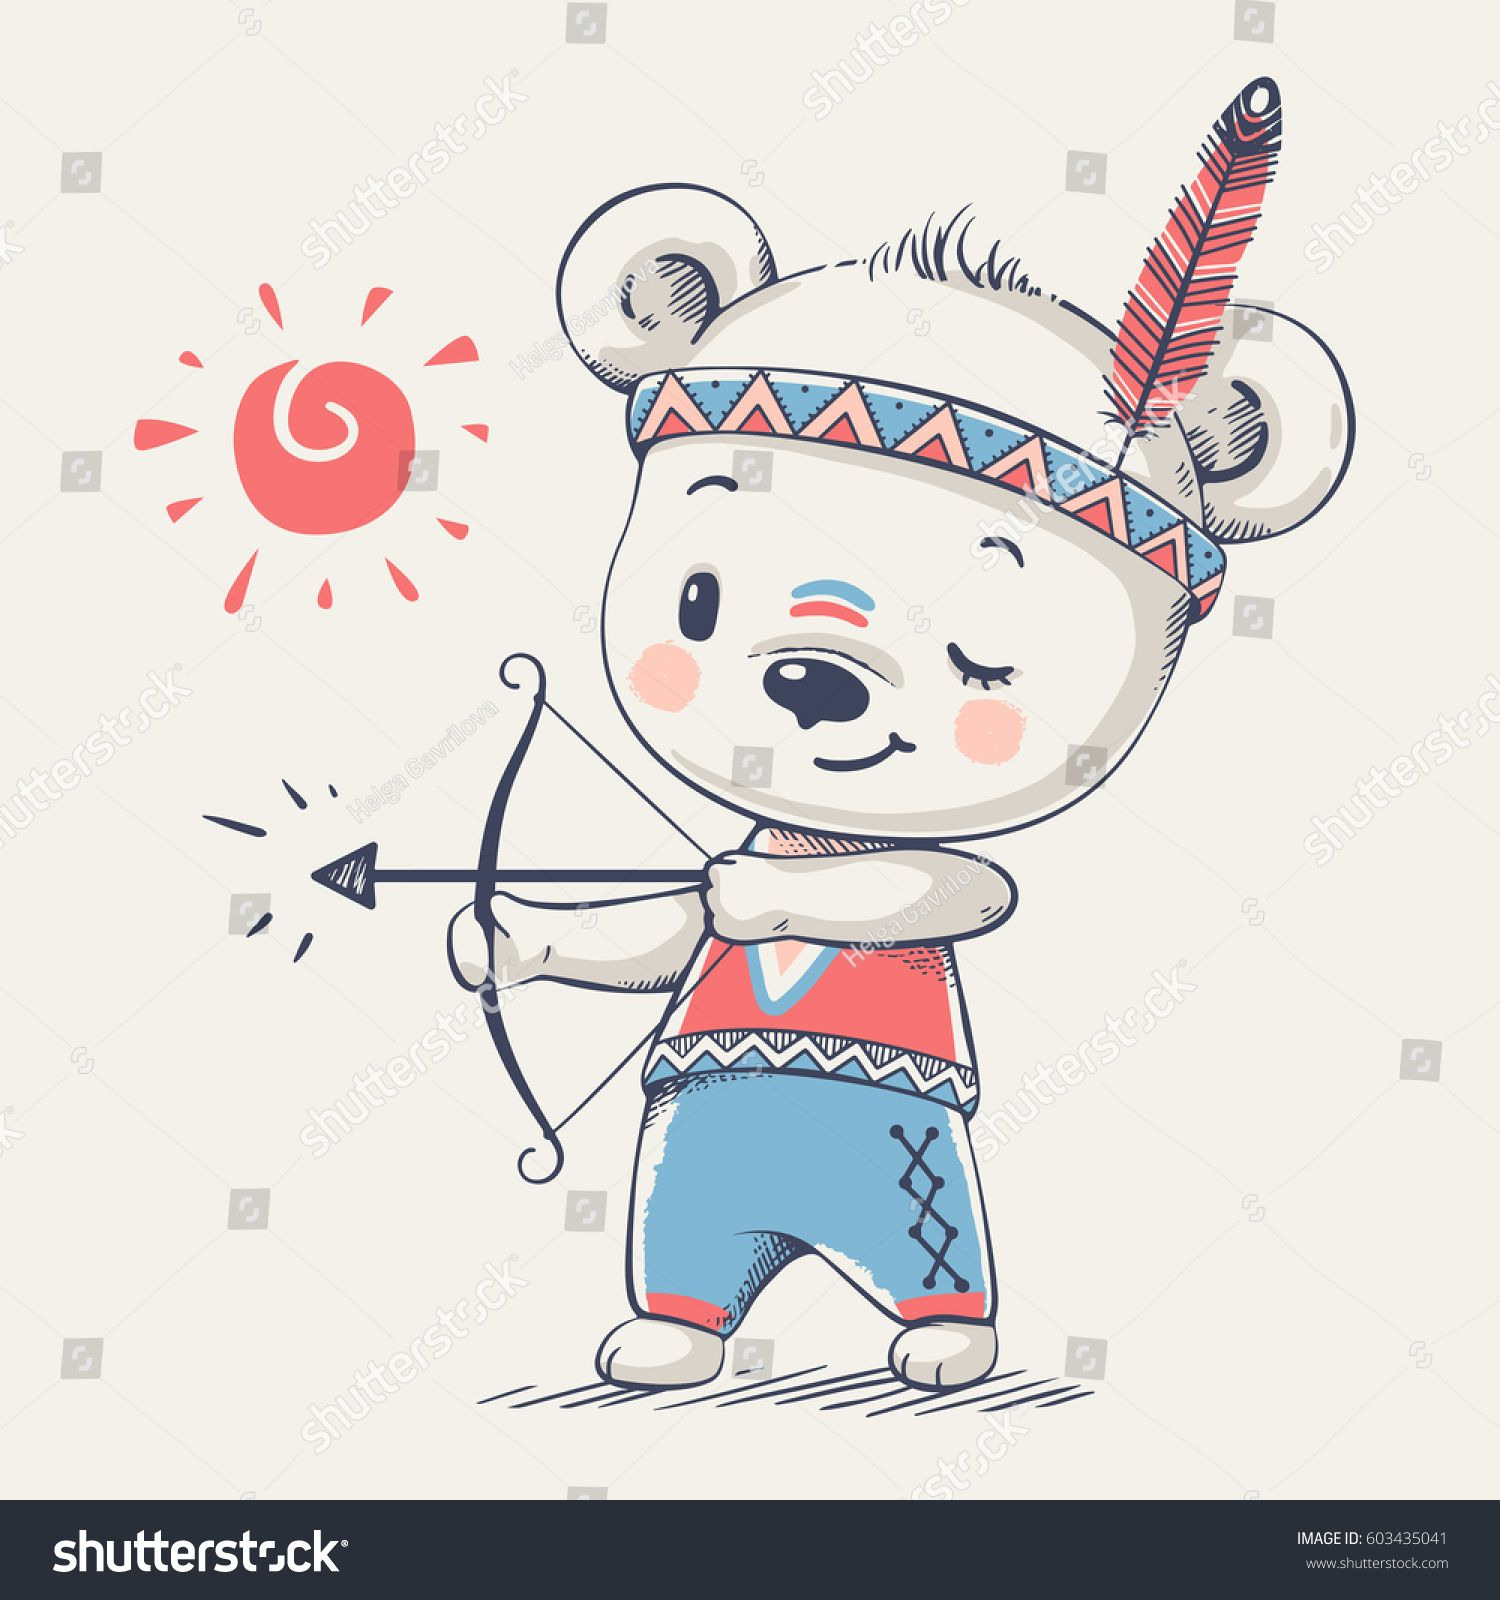 Cute Bear Indian With Bow And Arrow Cartoon Hand Drawn Vector Helicopter Flight Diagram Greeting Cards Zazzle Can Be Used For Baby T Shirt Print Fashion Design Kids Wear Shower Celebration Invitation Card